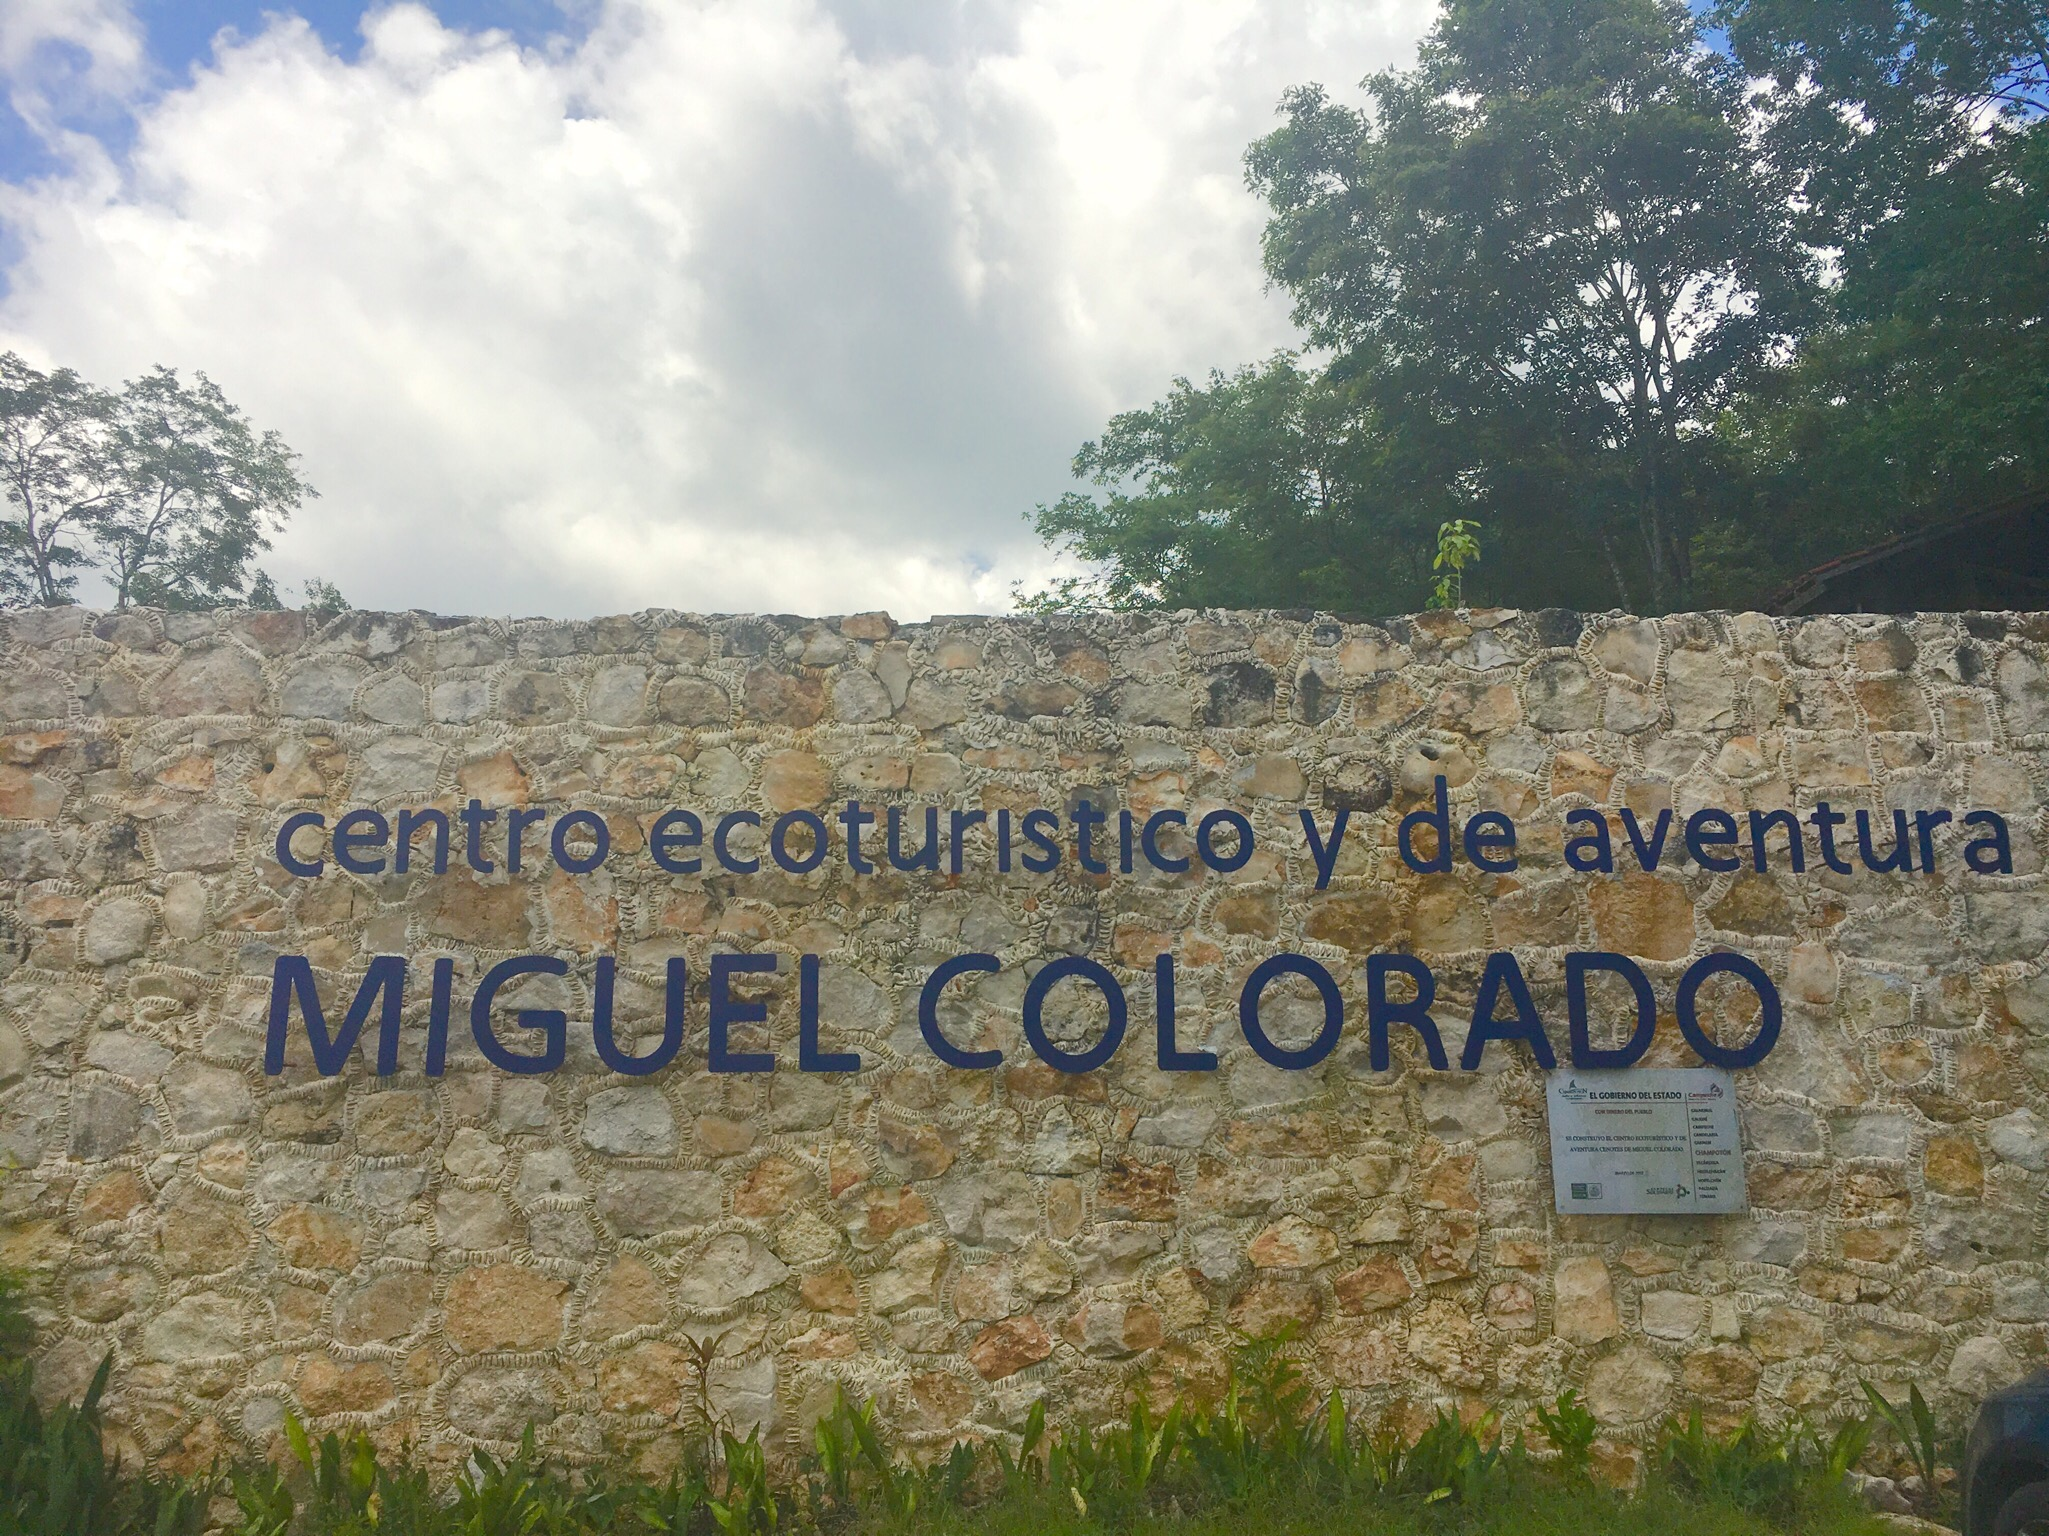 Miguel Colorado